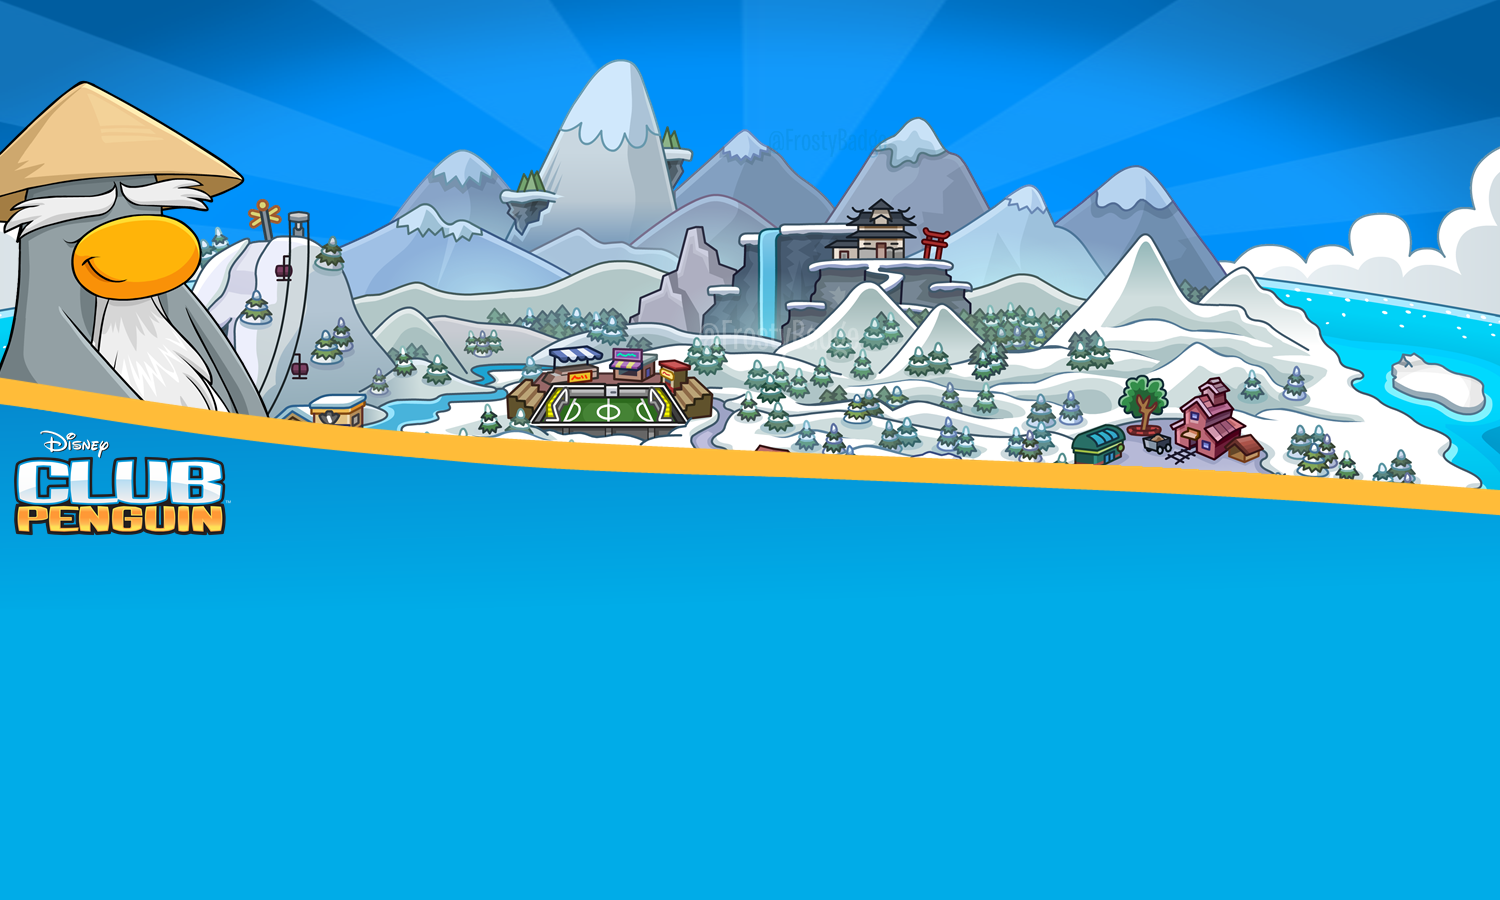 Pin Club Penguin Twitter Background Wallpapers Everything on 1500x900